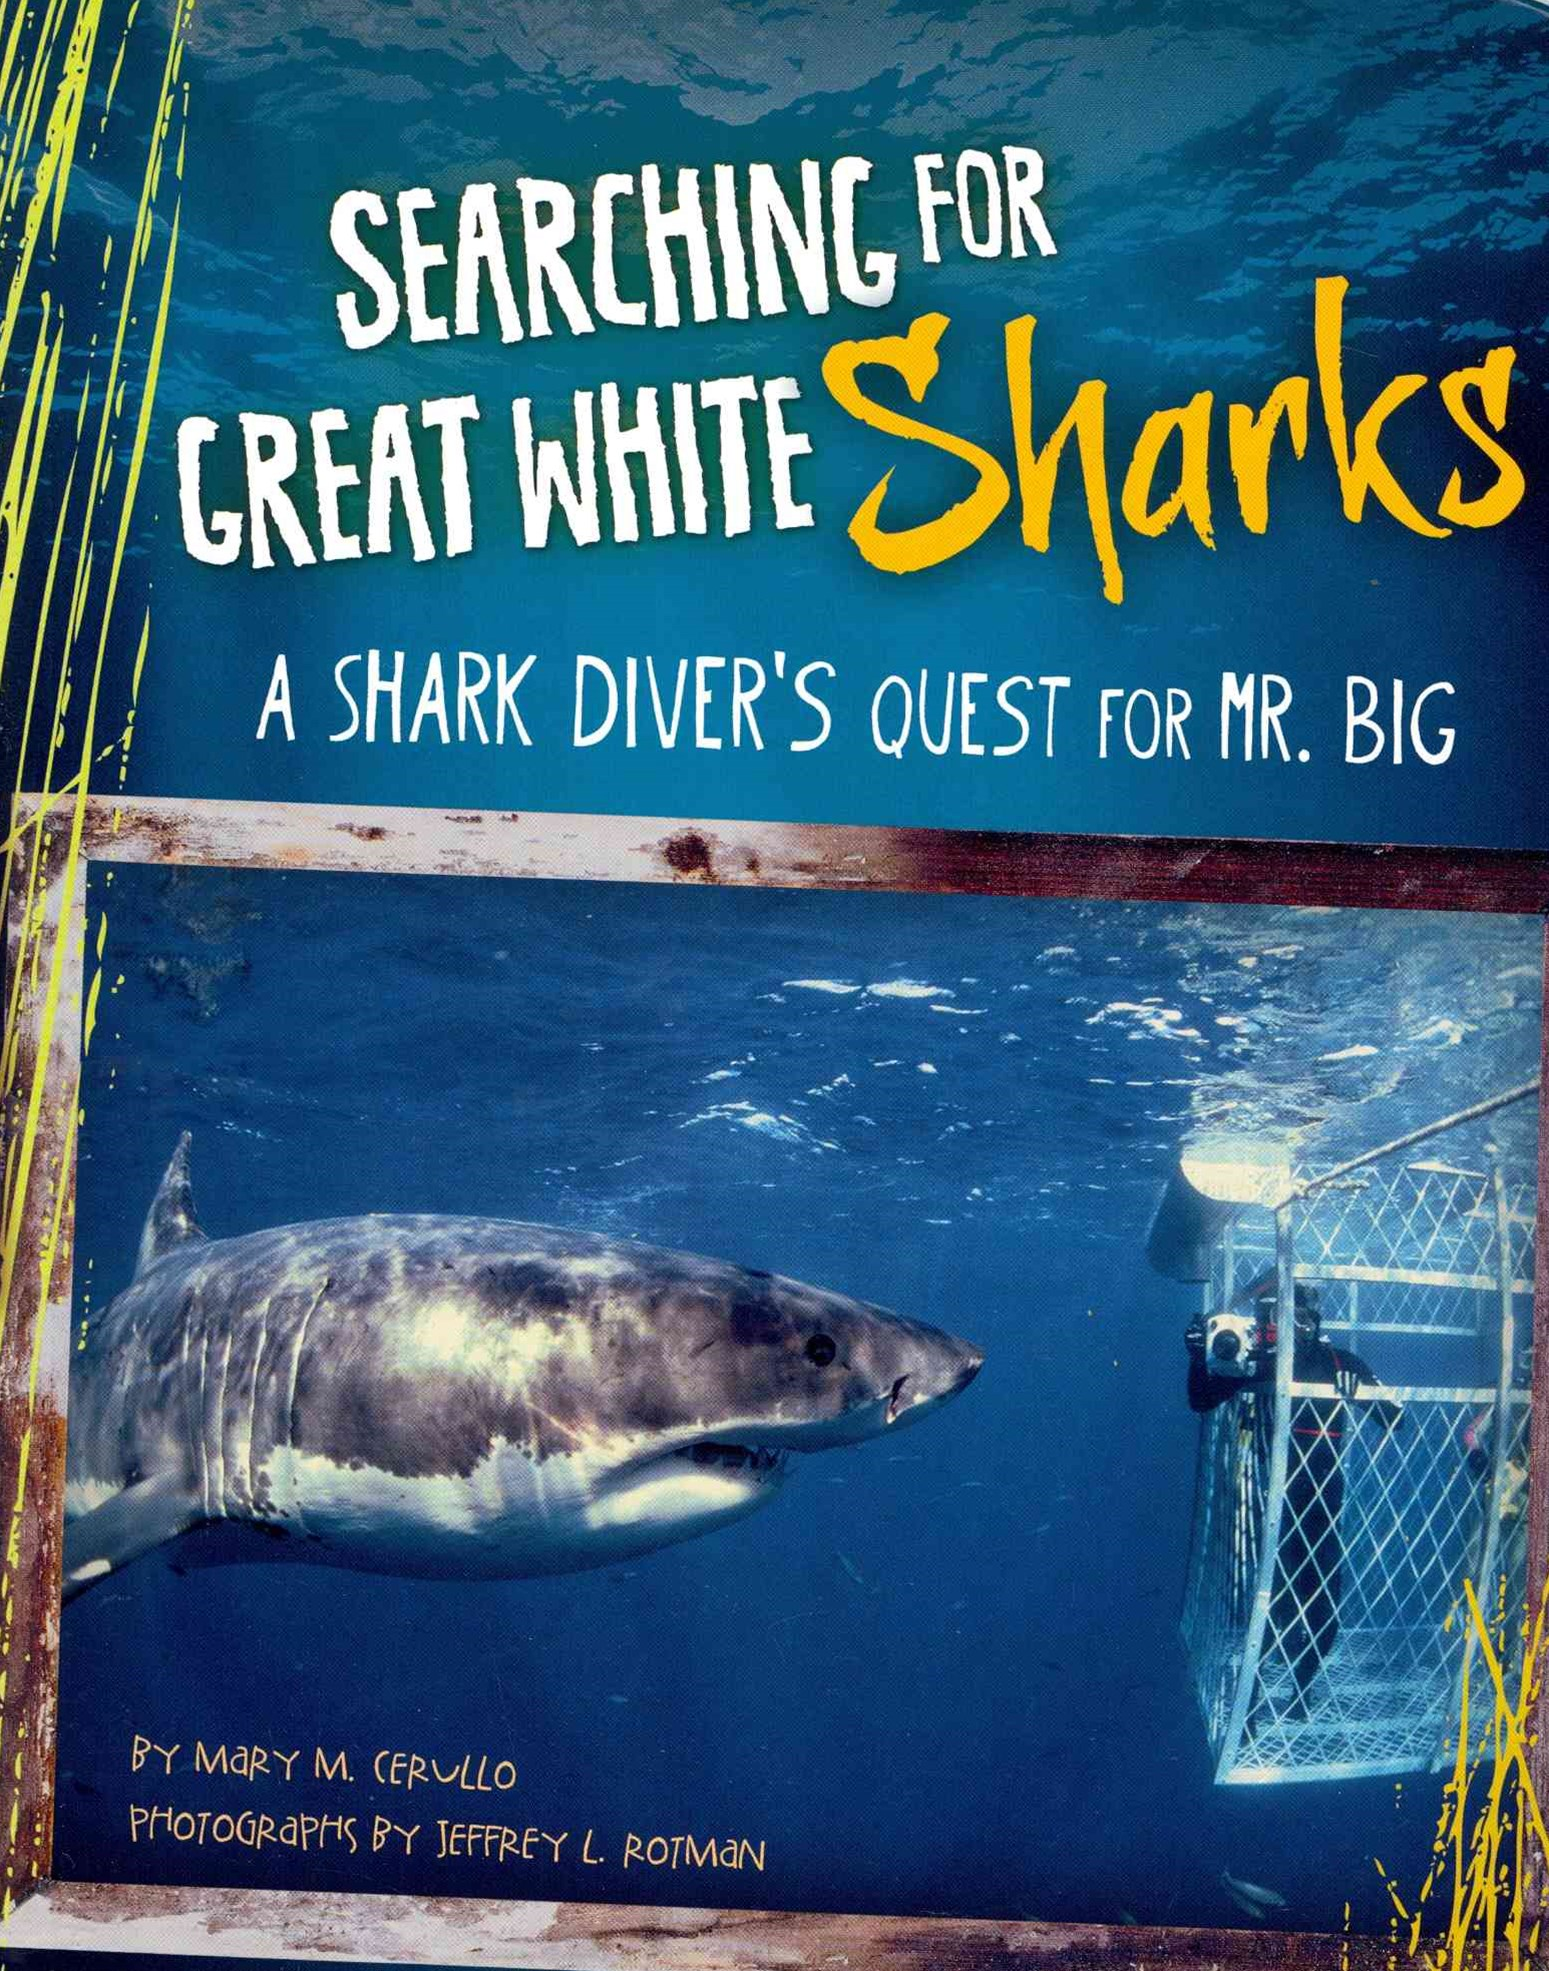 Searching for Great White Sharks